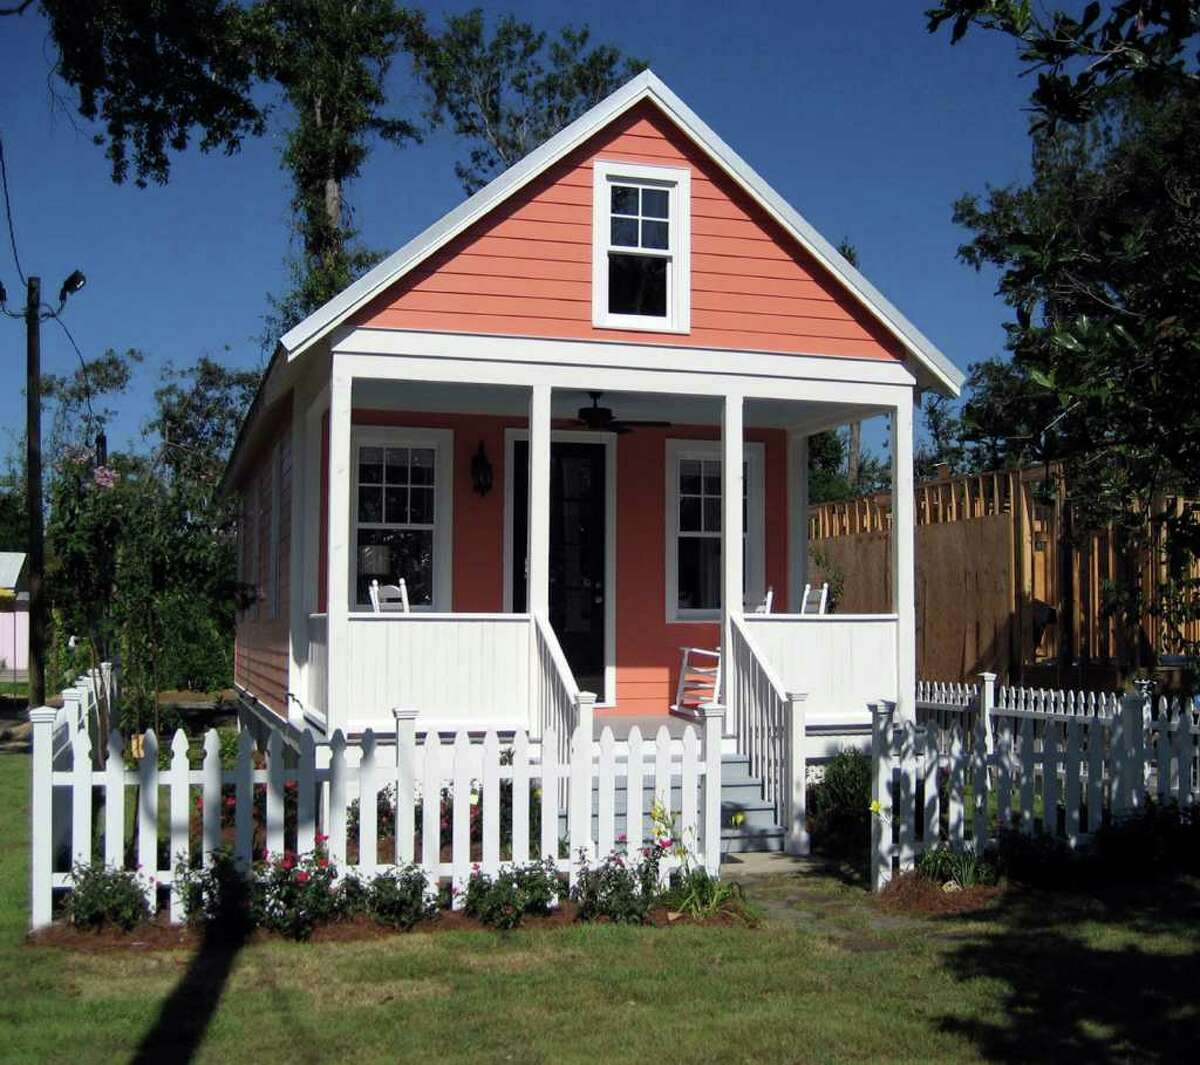 Thi 2006 photo courtesy of Lowe's shows a Katrina Cottage designed by Marianne Cusato in Ocean Springs, Miss. This design packs a living room, two bedrooms and one bath into 544 square feet. The tiny charmers with pitched roofs, nostalgic front porches and 300 to 1,800 square feet, are becoming popular in other parts of the country too; Lowe's home stores sell the blueprints and materials. (AP Photo/Lowe's) NO SALES